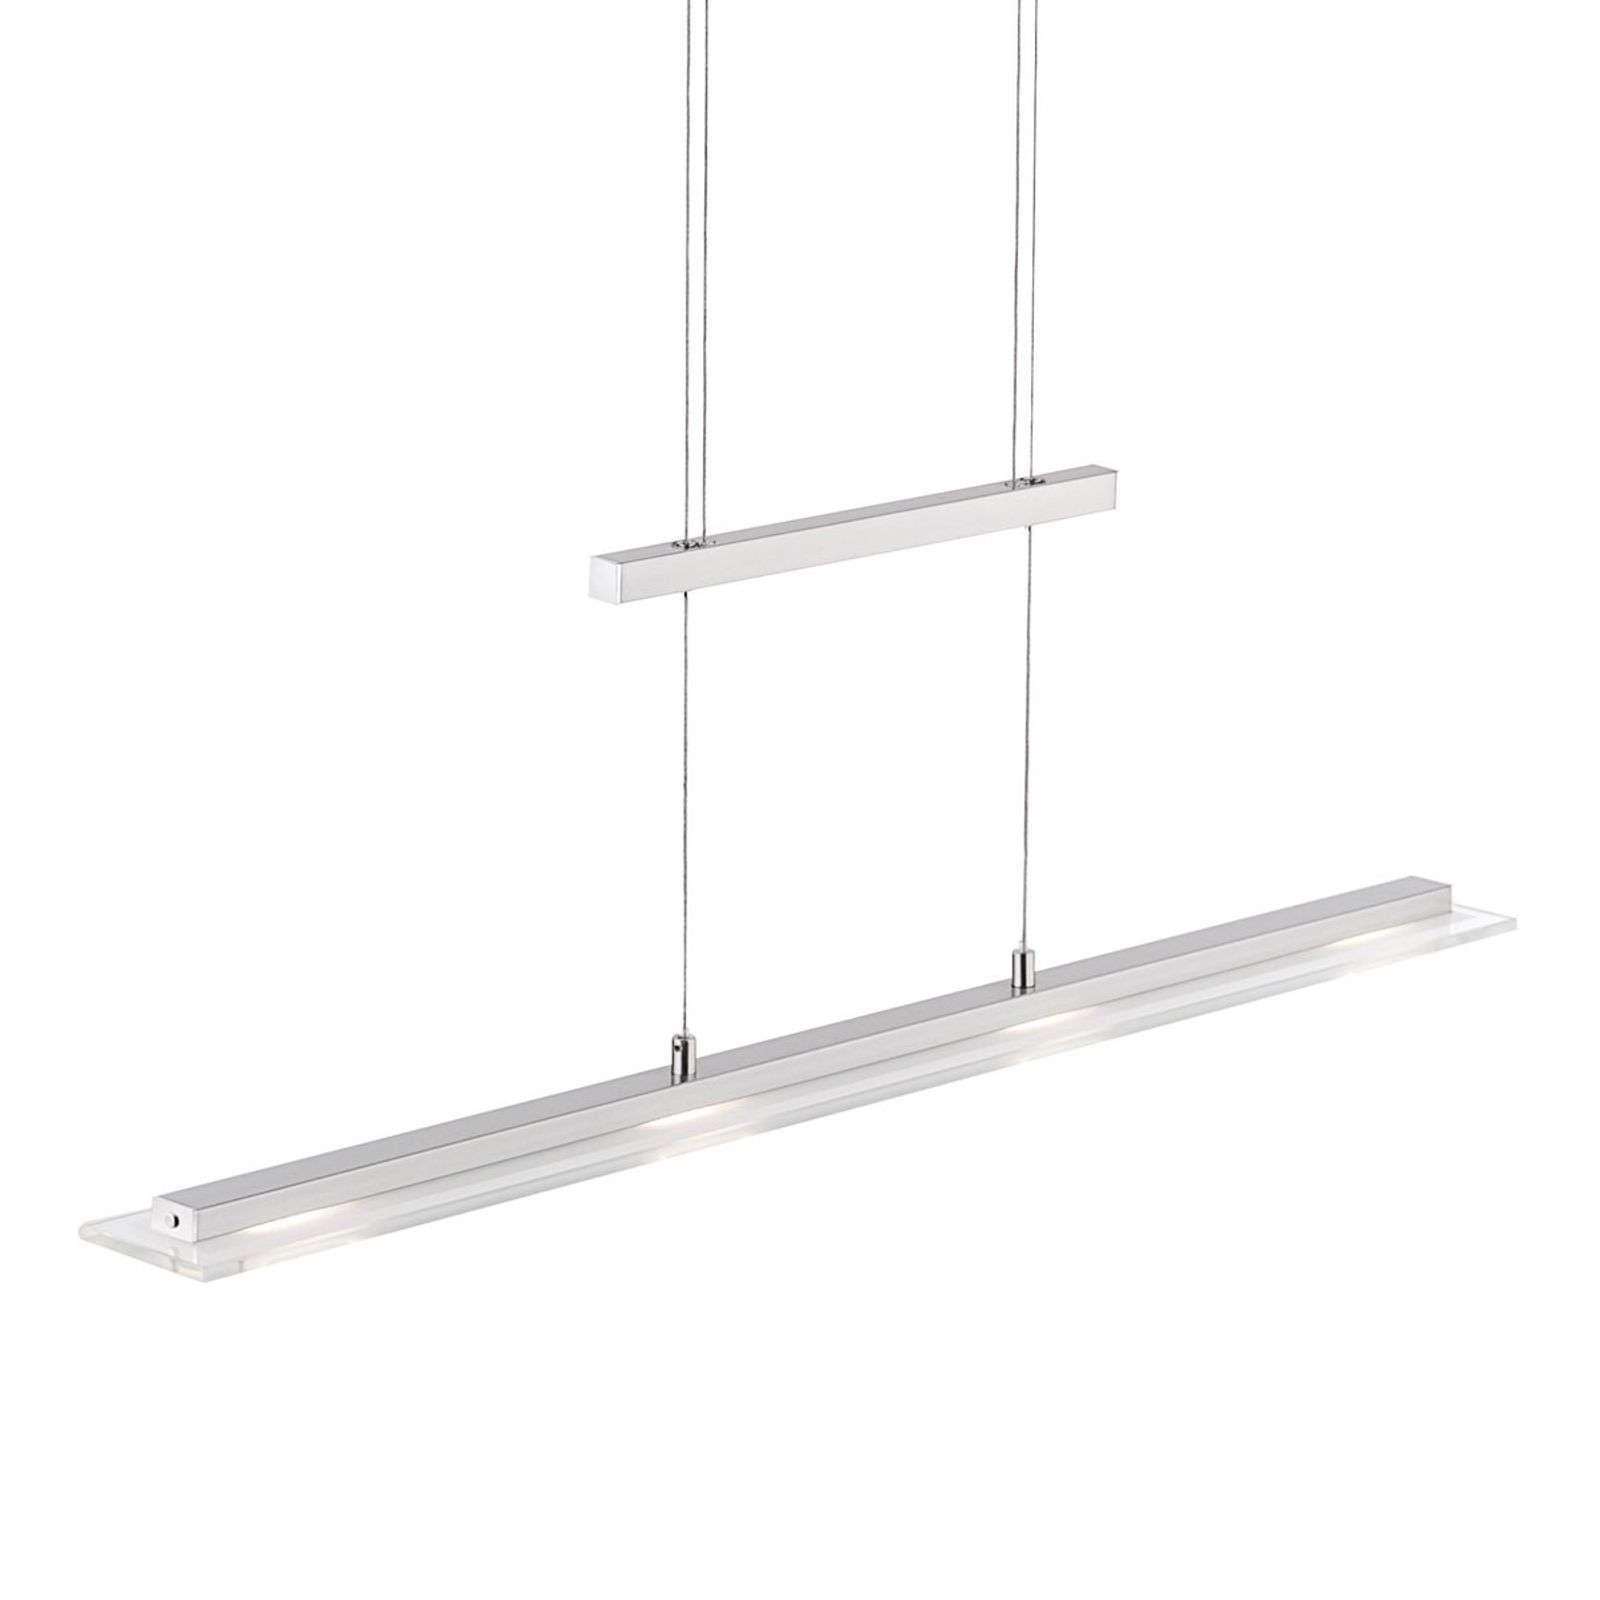 Lámpara colgante LED Tenso tunable white, 64 cm